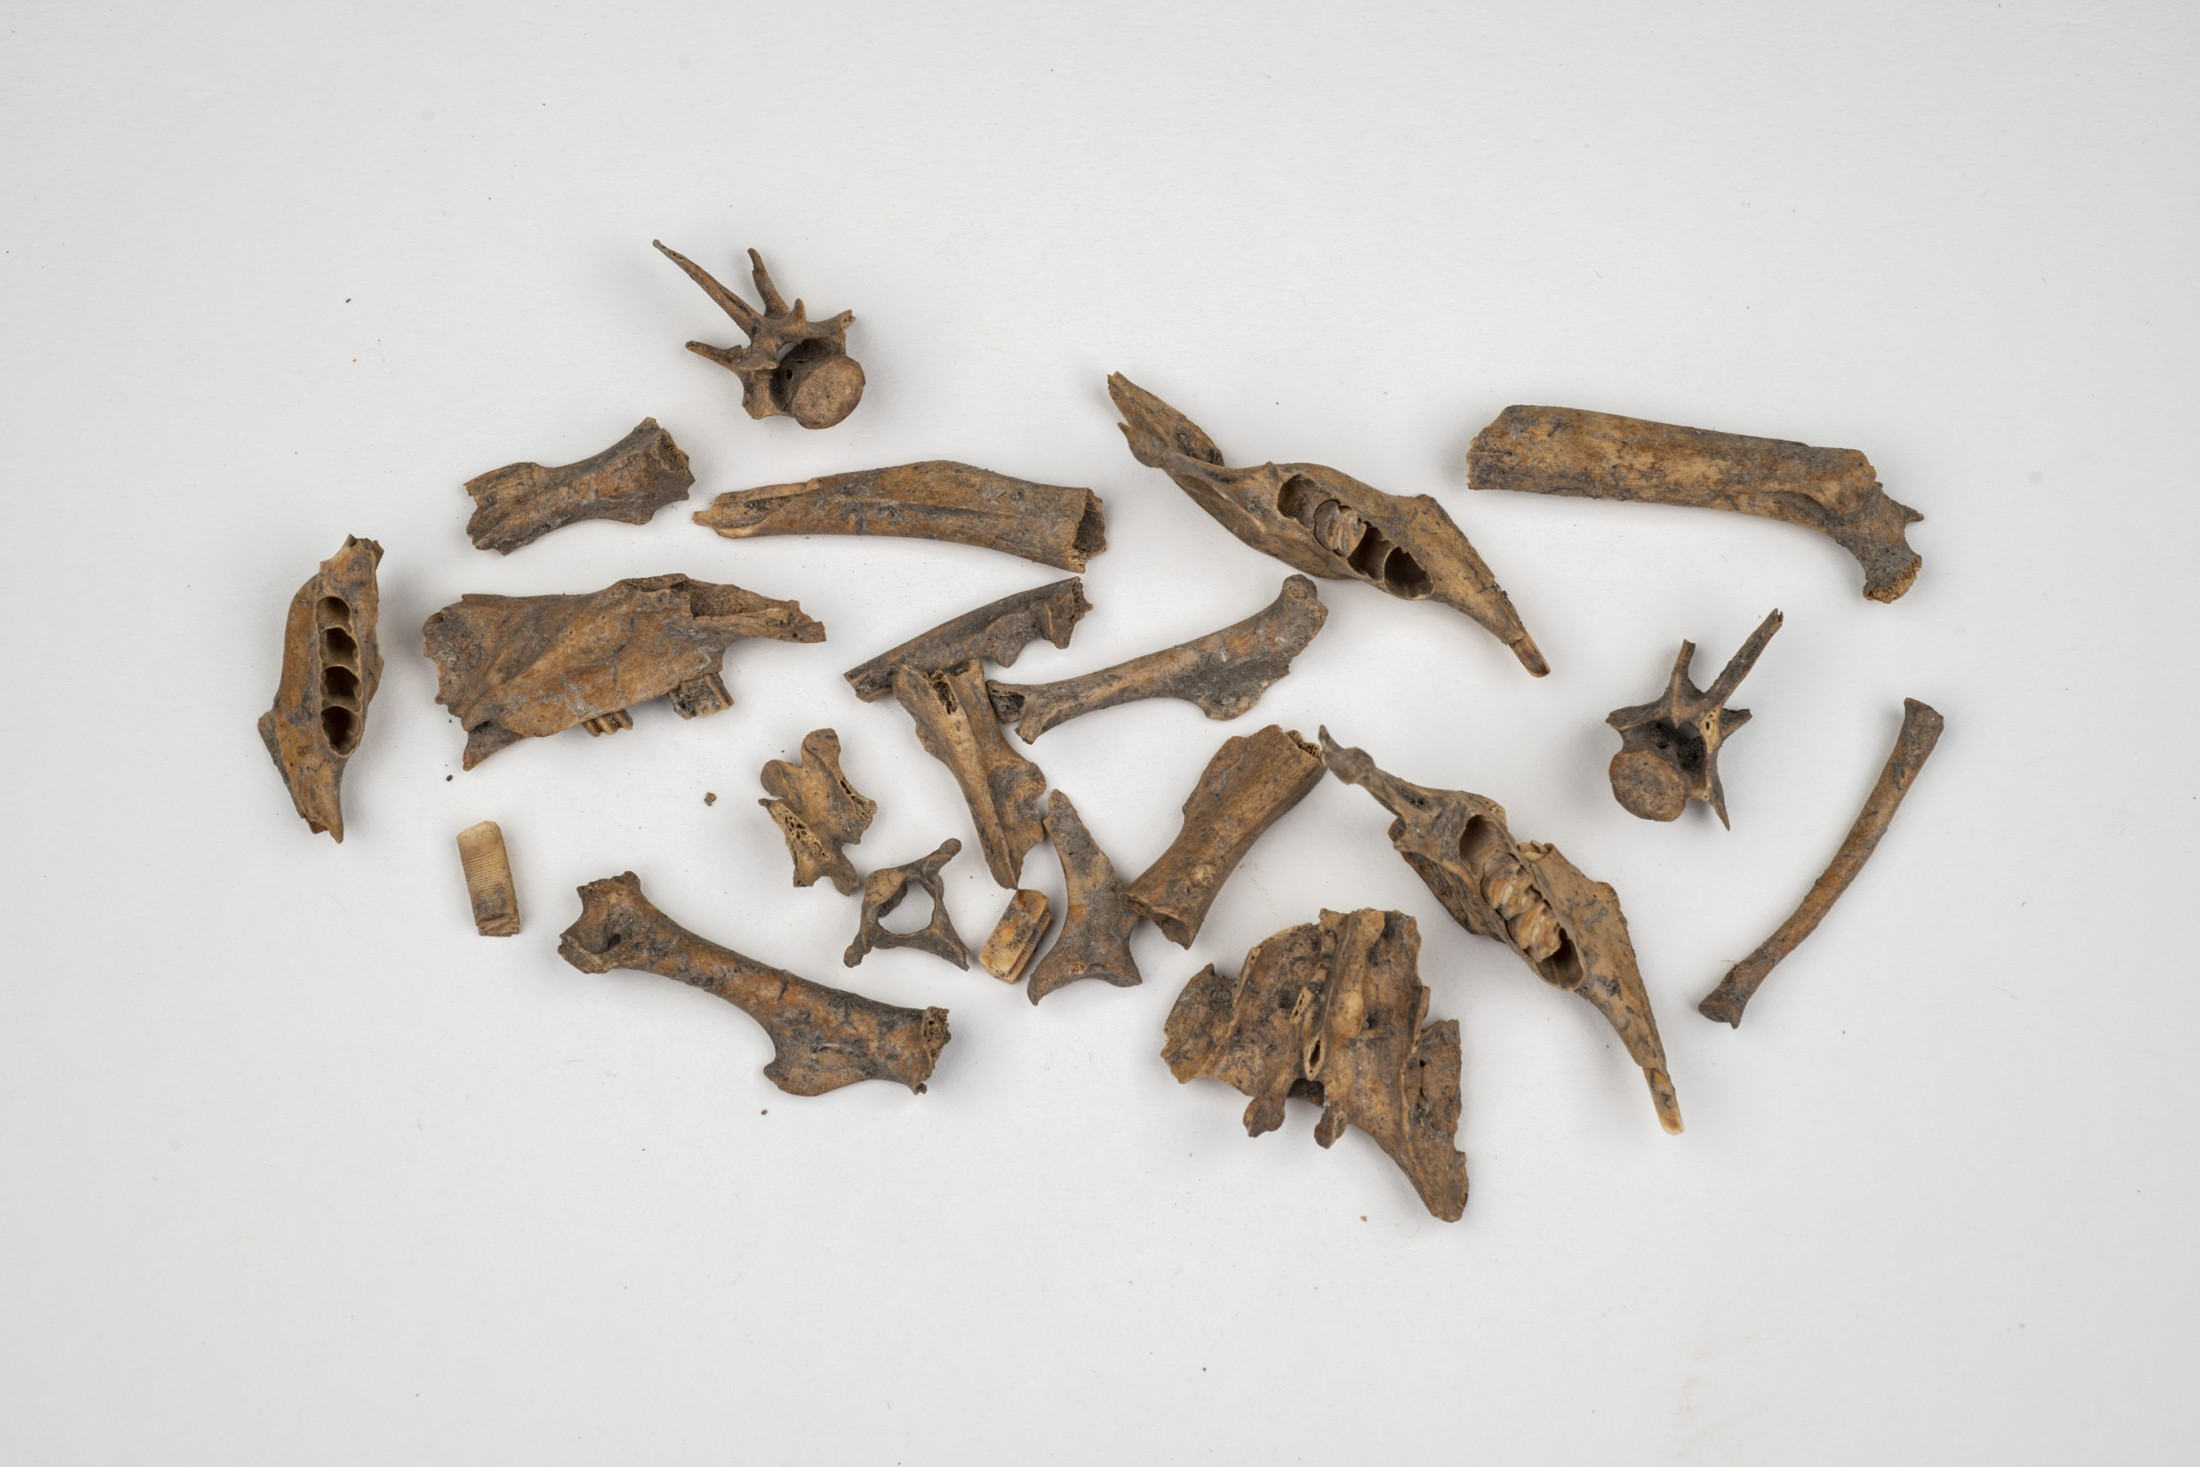 Small rodent bones against a white background